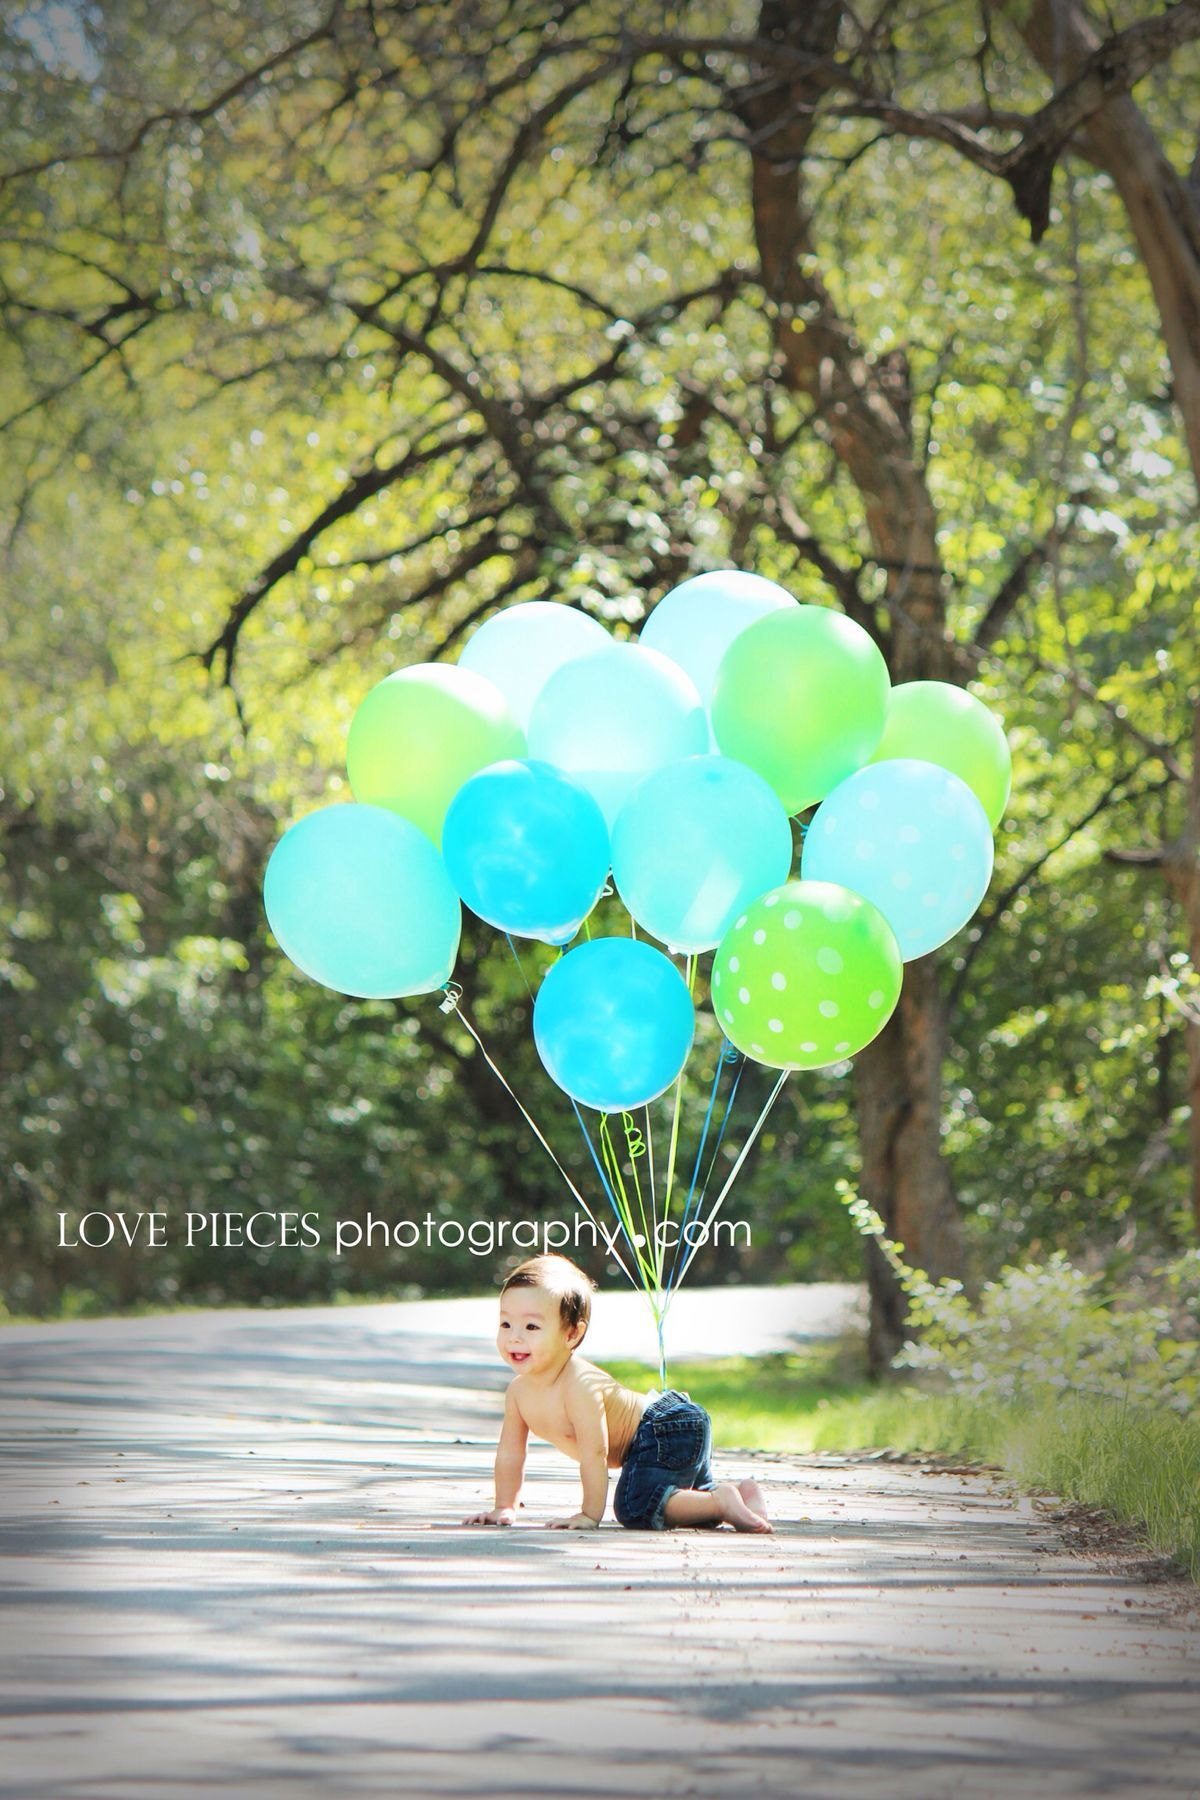 Pin by Kelsey Achin on photo ideas Pinterest Birthdays Picture